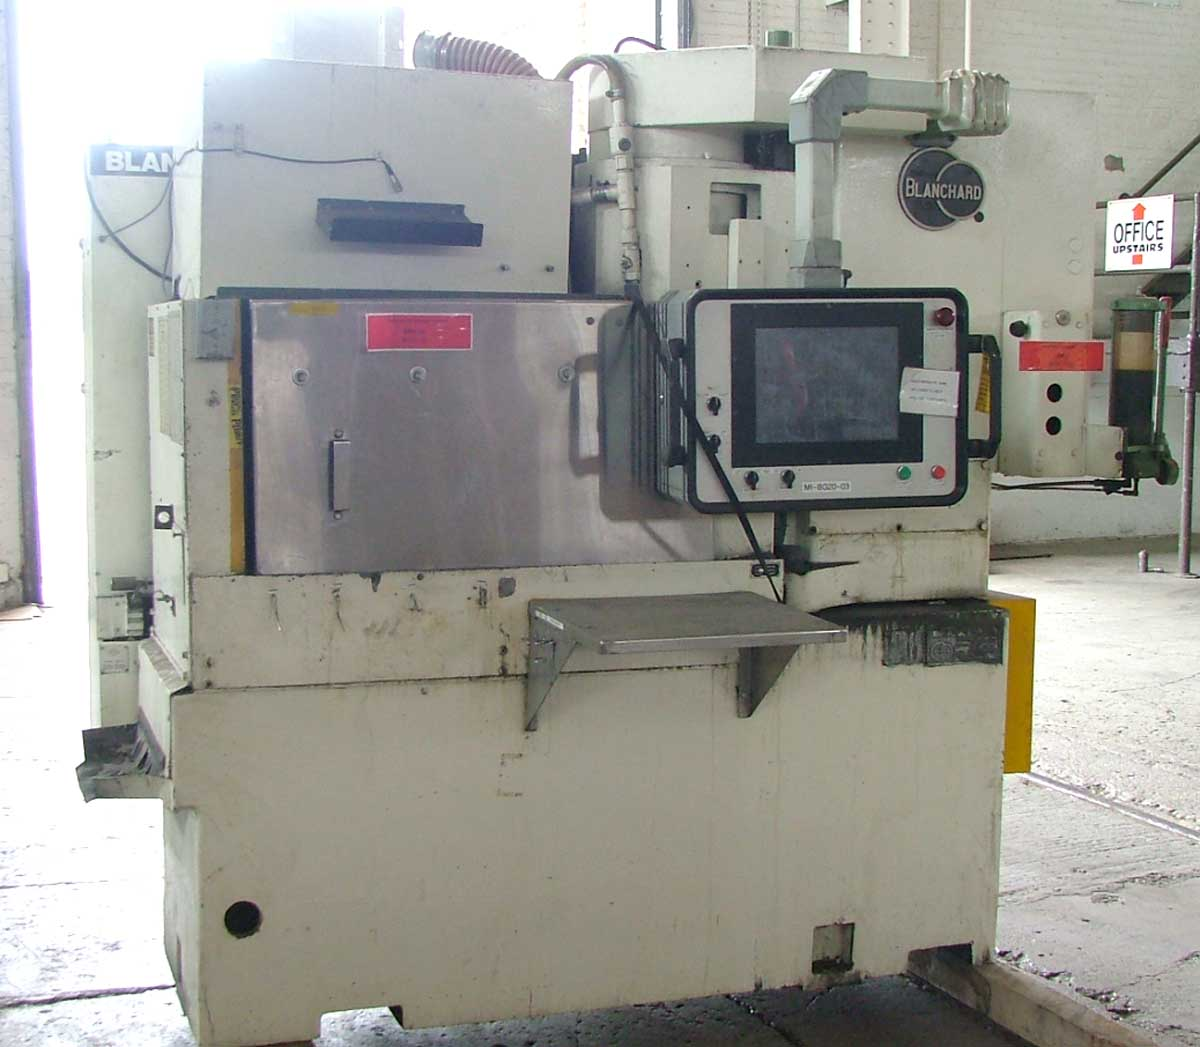 Blanchard #11AD-20, 20″ Vertical Spindle Rotary Surface Grinder, Allen Bradley Compactlogix PLC touch screen control, Re-Manufactured W/ Warranty